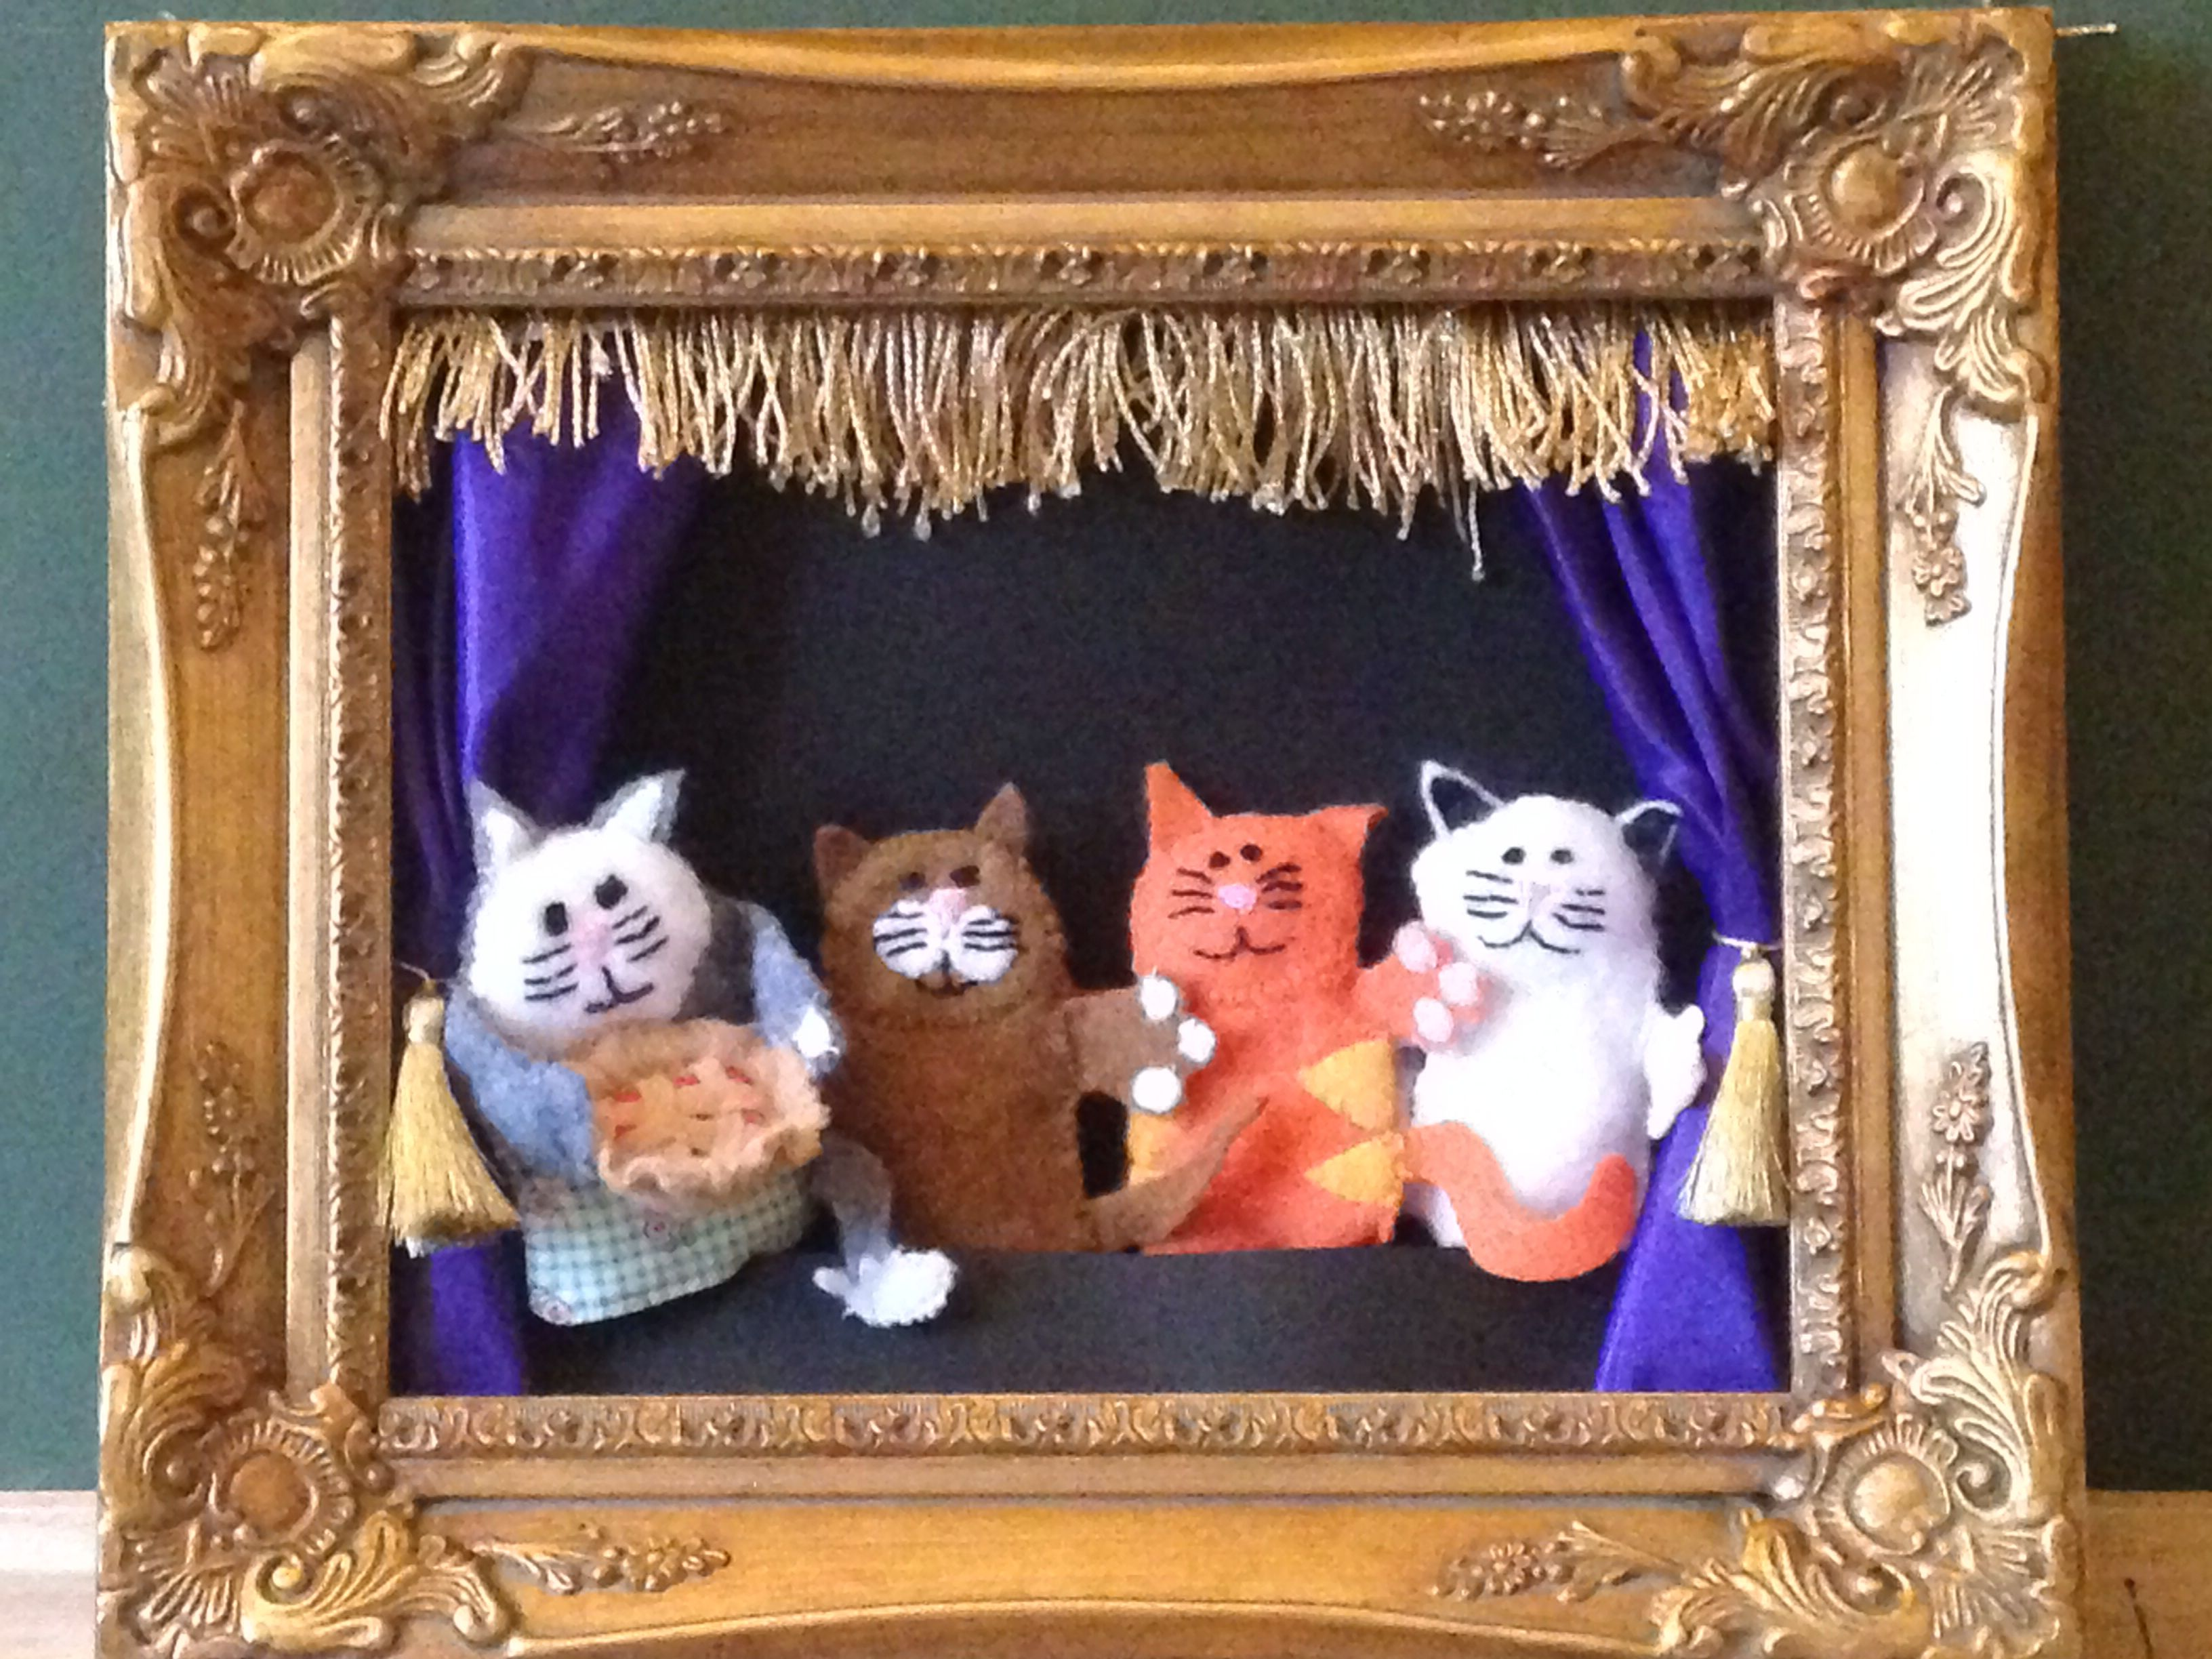 Finger Puppet Theater Thank You Pinterest The Picture Frame Was A Hit Finger Puppet Nursery Rhyme Three Lit Nursery Rhymes Wall Art Theme Activity Handmade